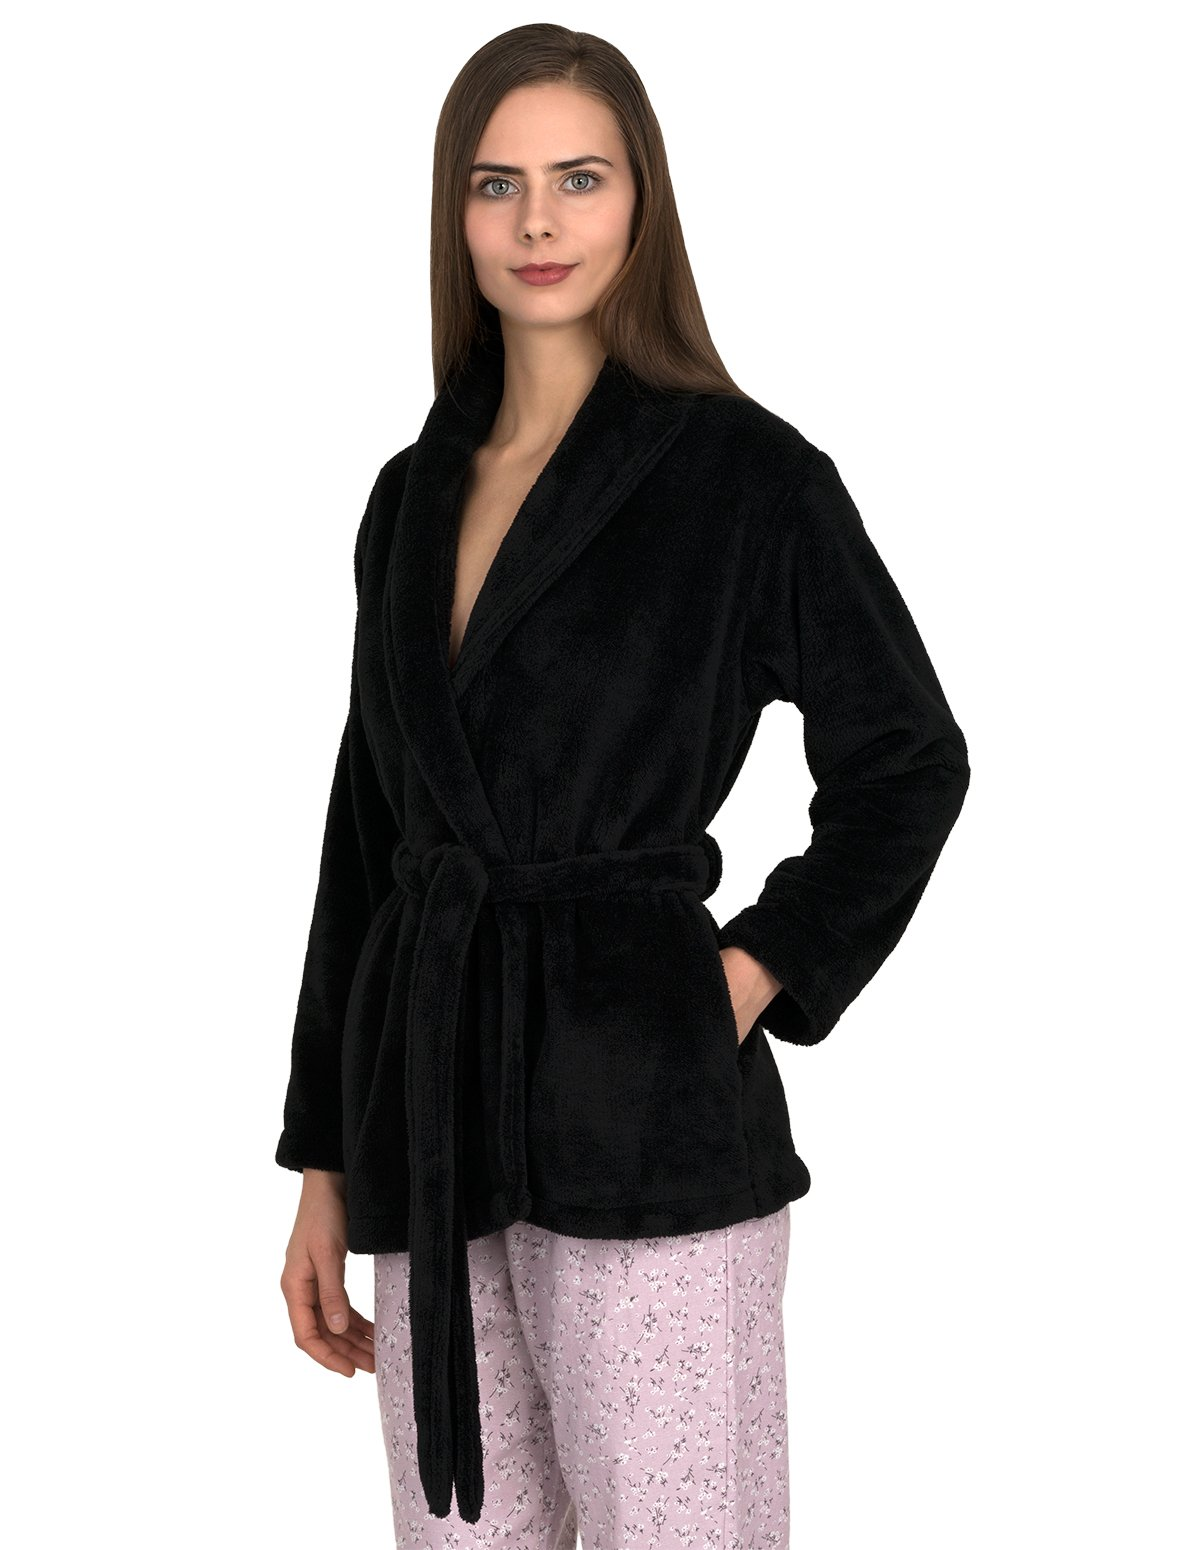 TowelSelections Women's Bed Jacket Fleece Cardigan Cuddly Robe Large/X-Large Phantom Black by TowelSelections